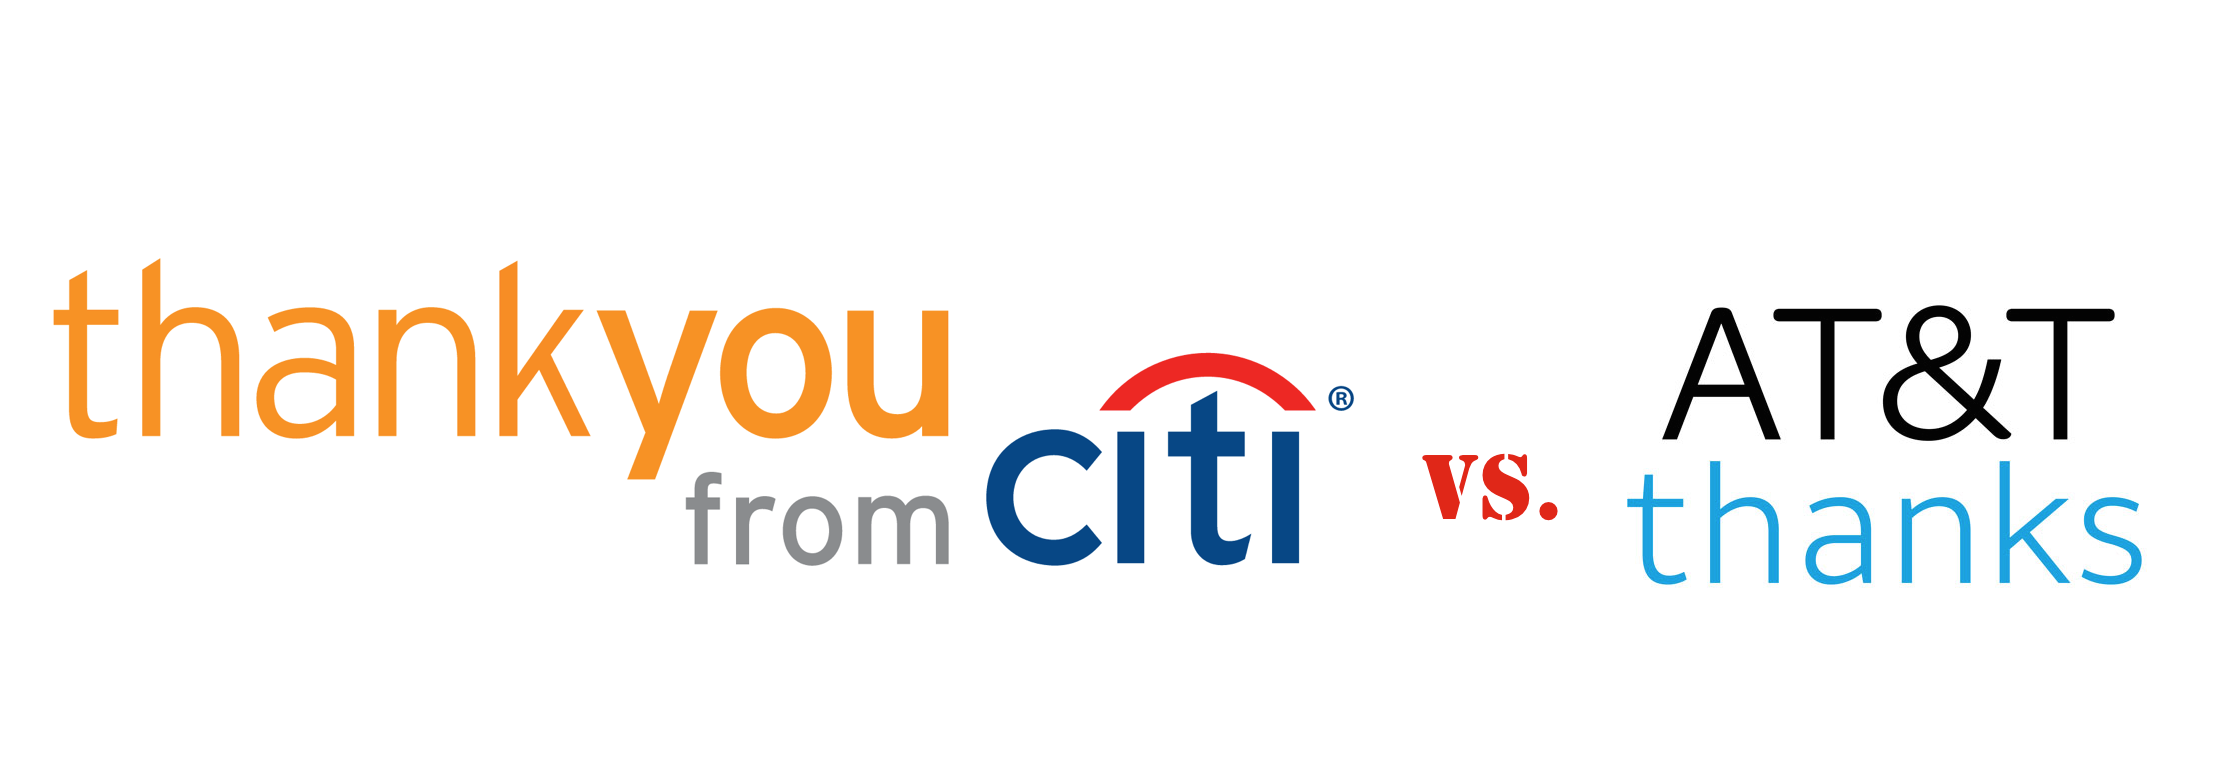 "Citi Is Suing AT&T Over The Word ""Thanks"""